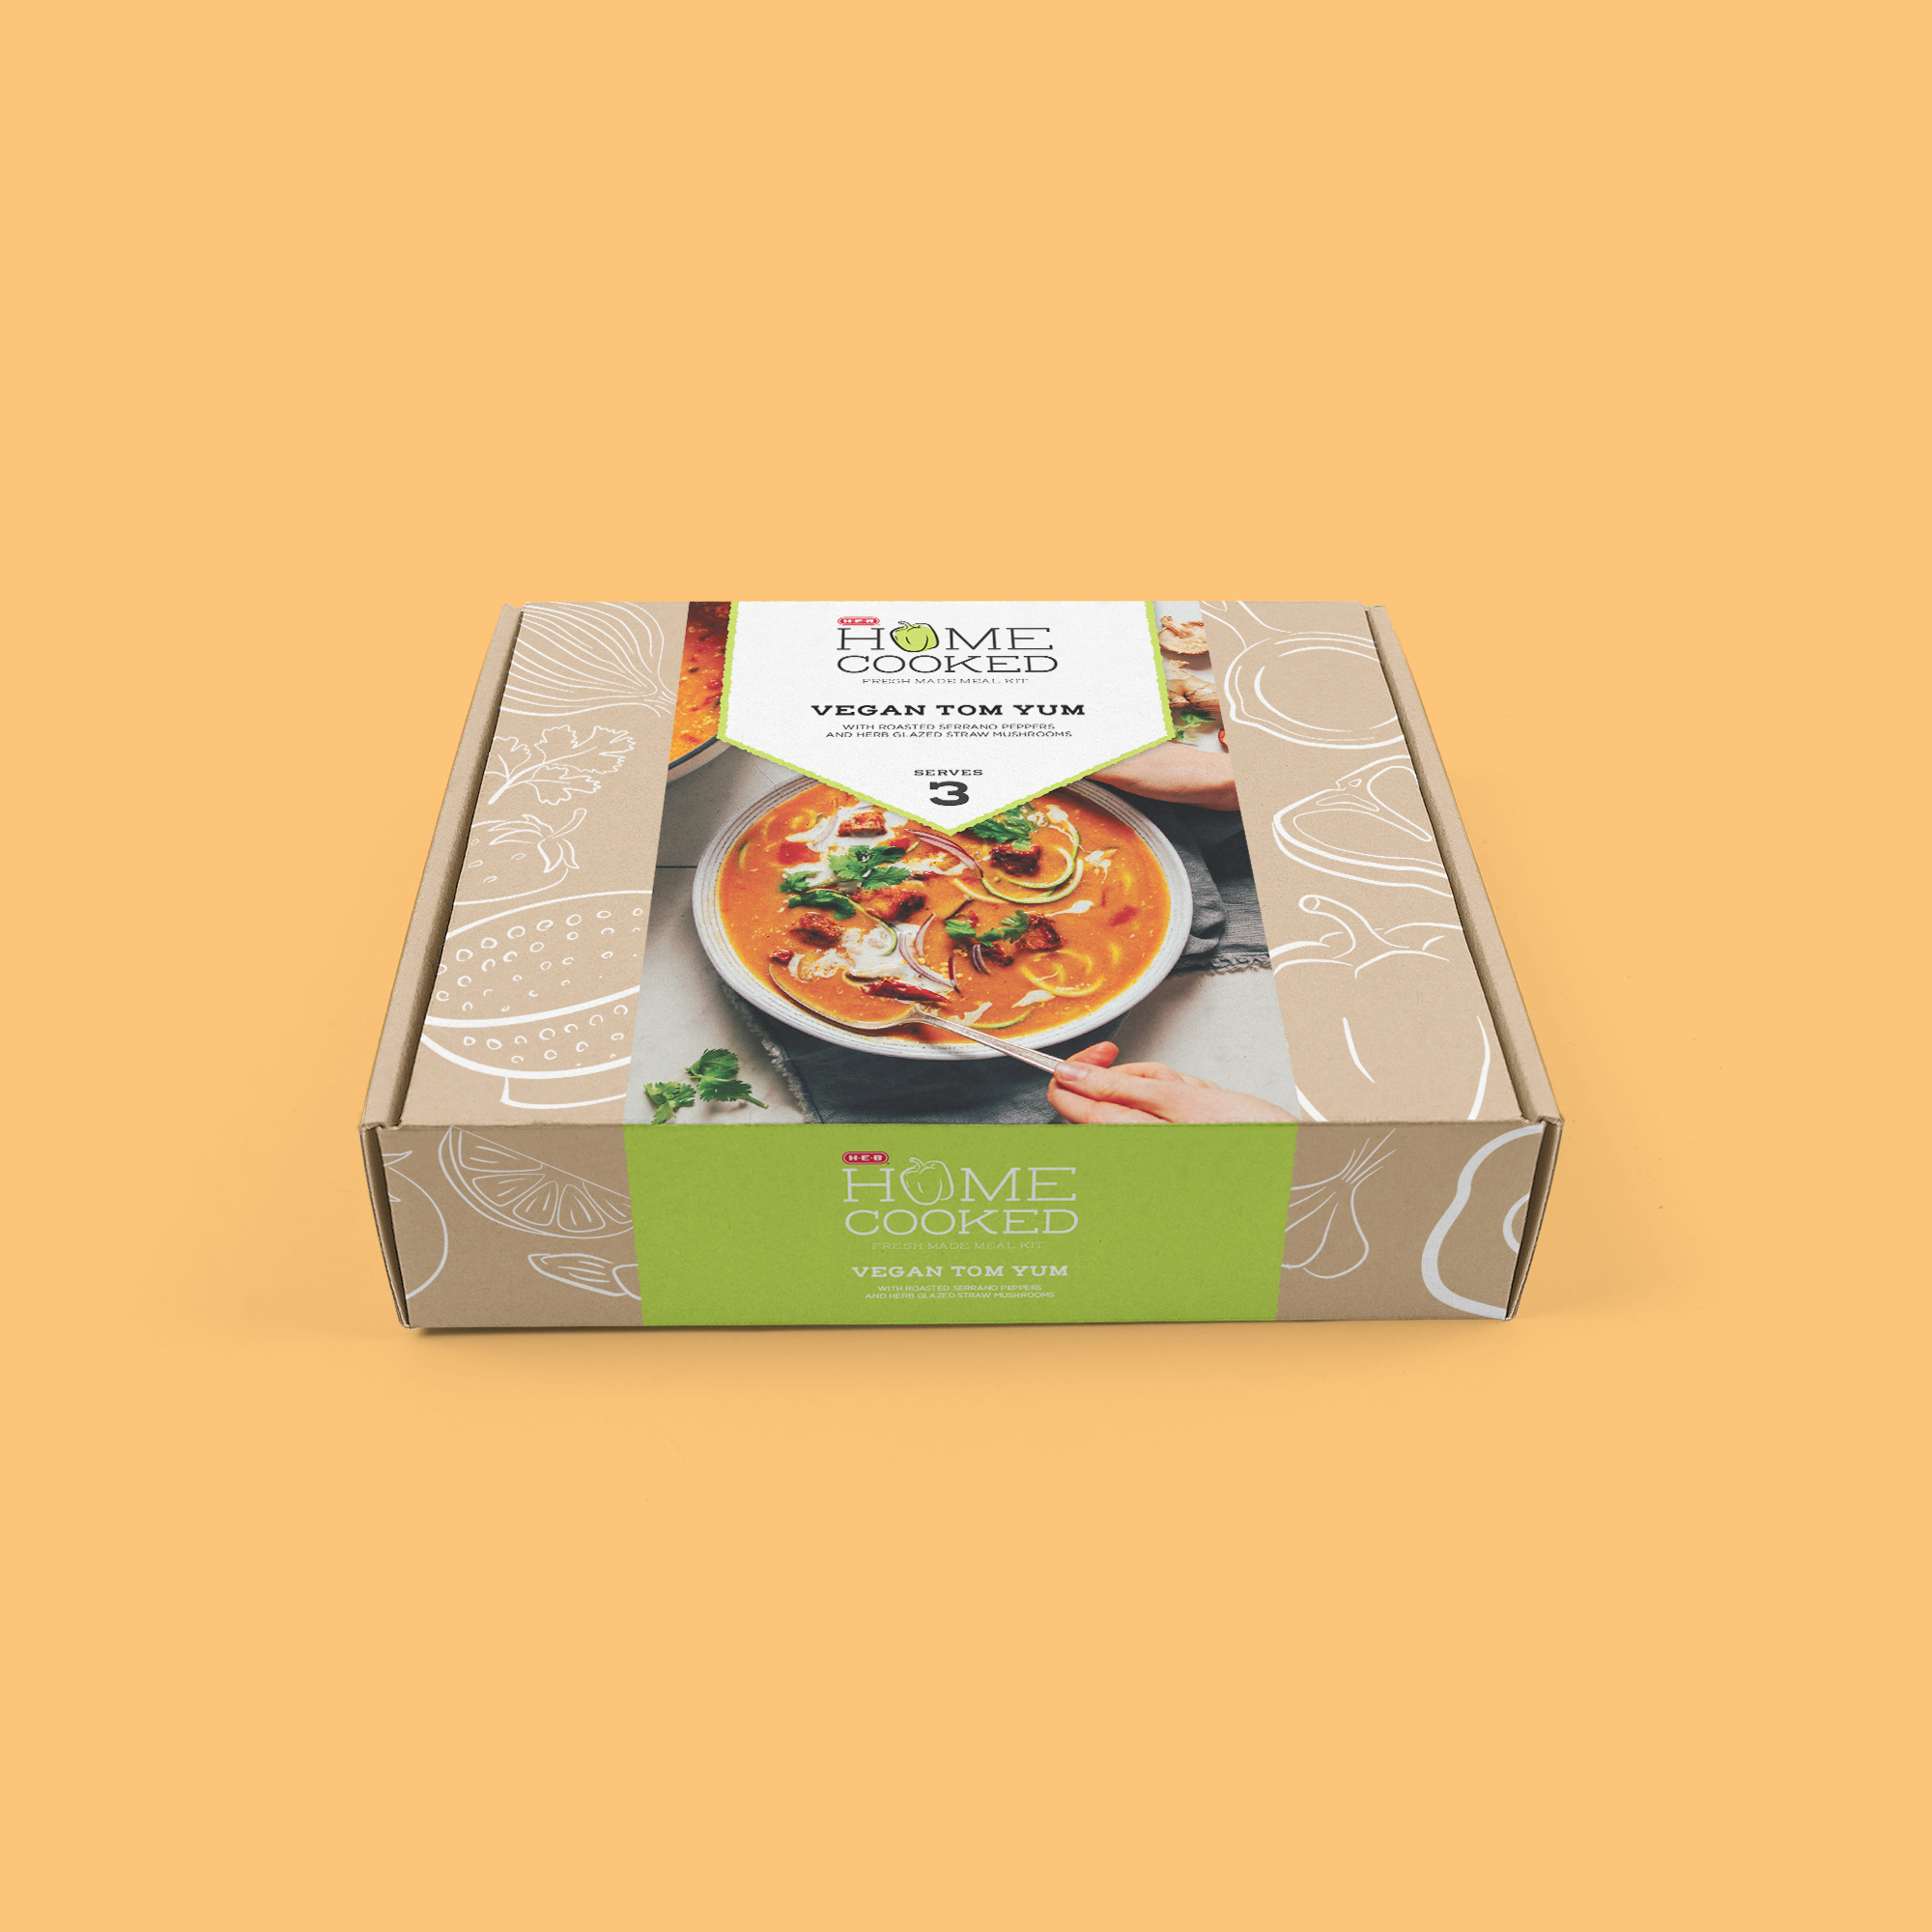 The package for larger sized meals, serving 3 or more servings.